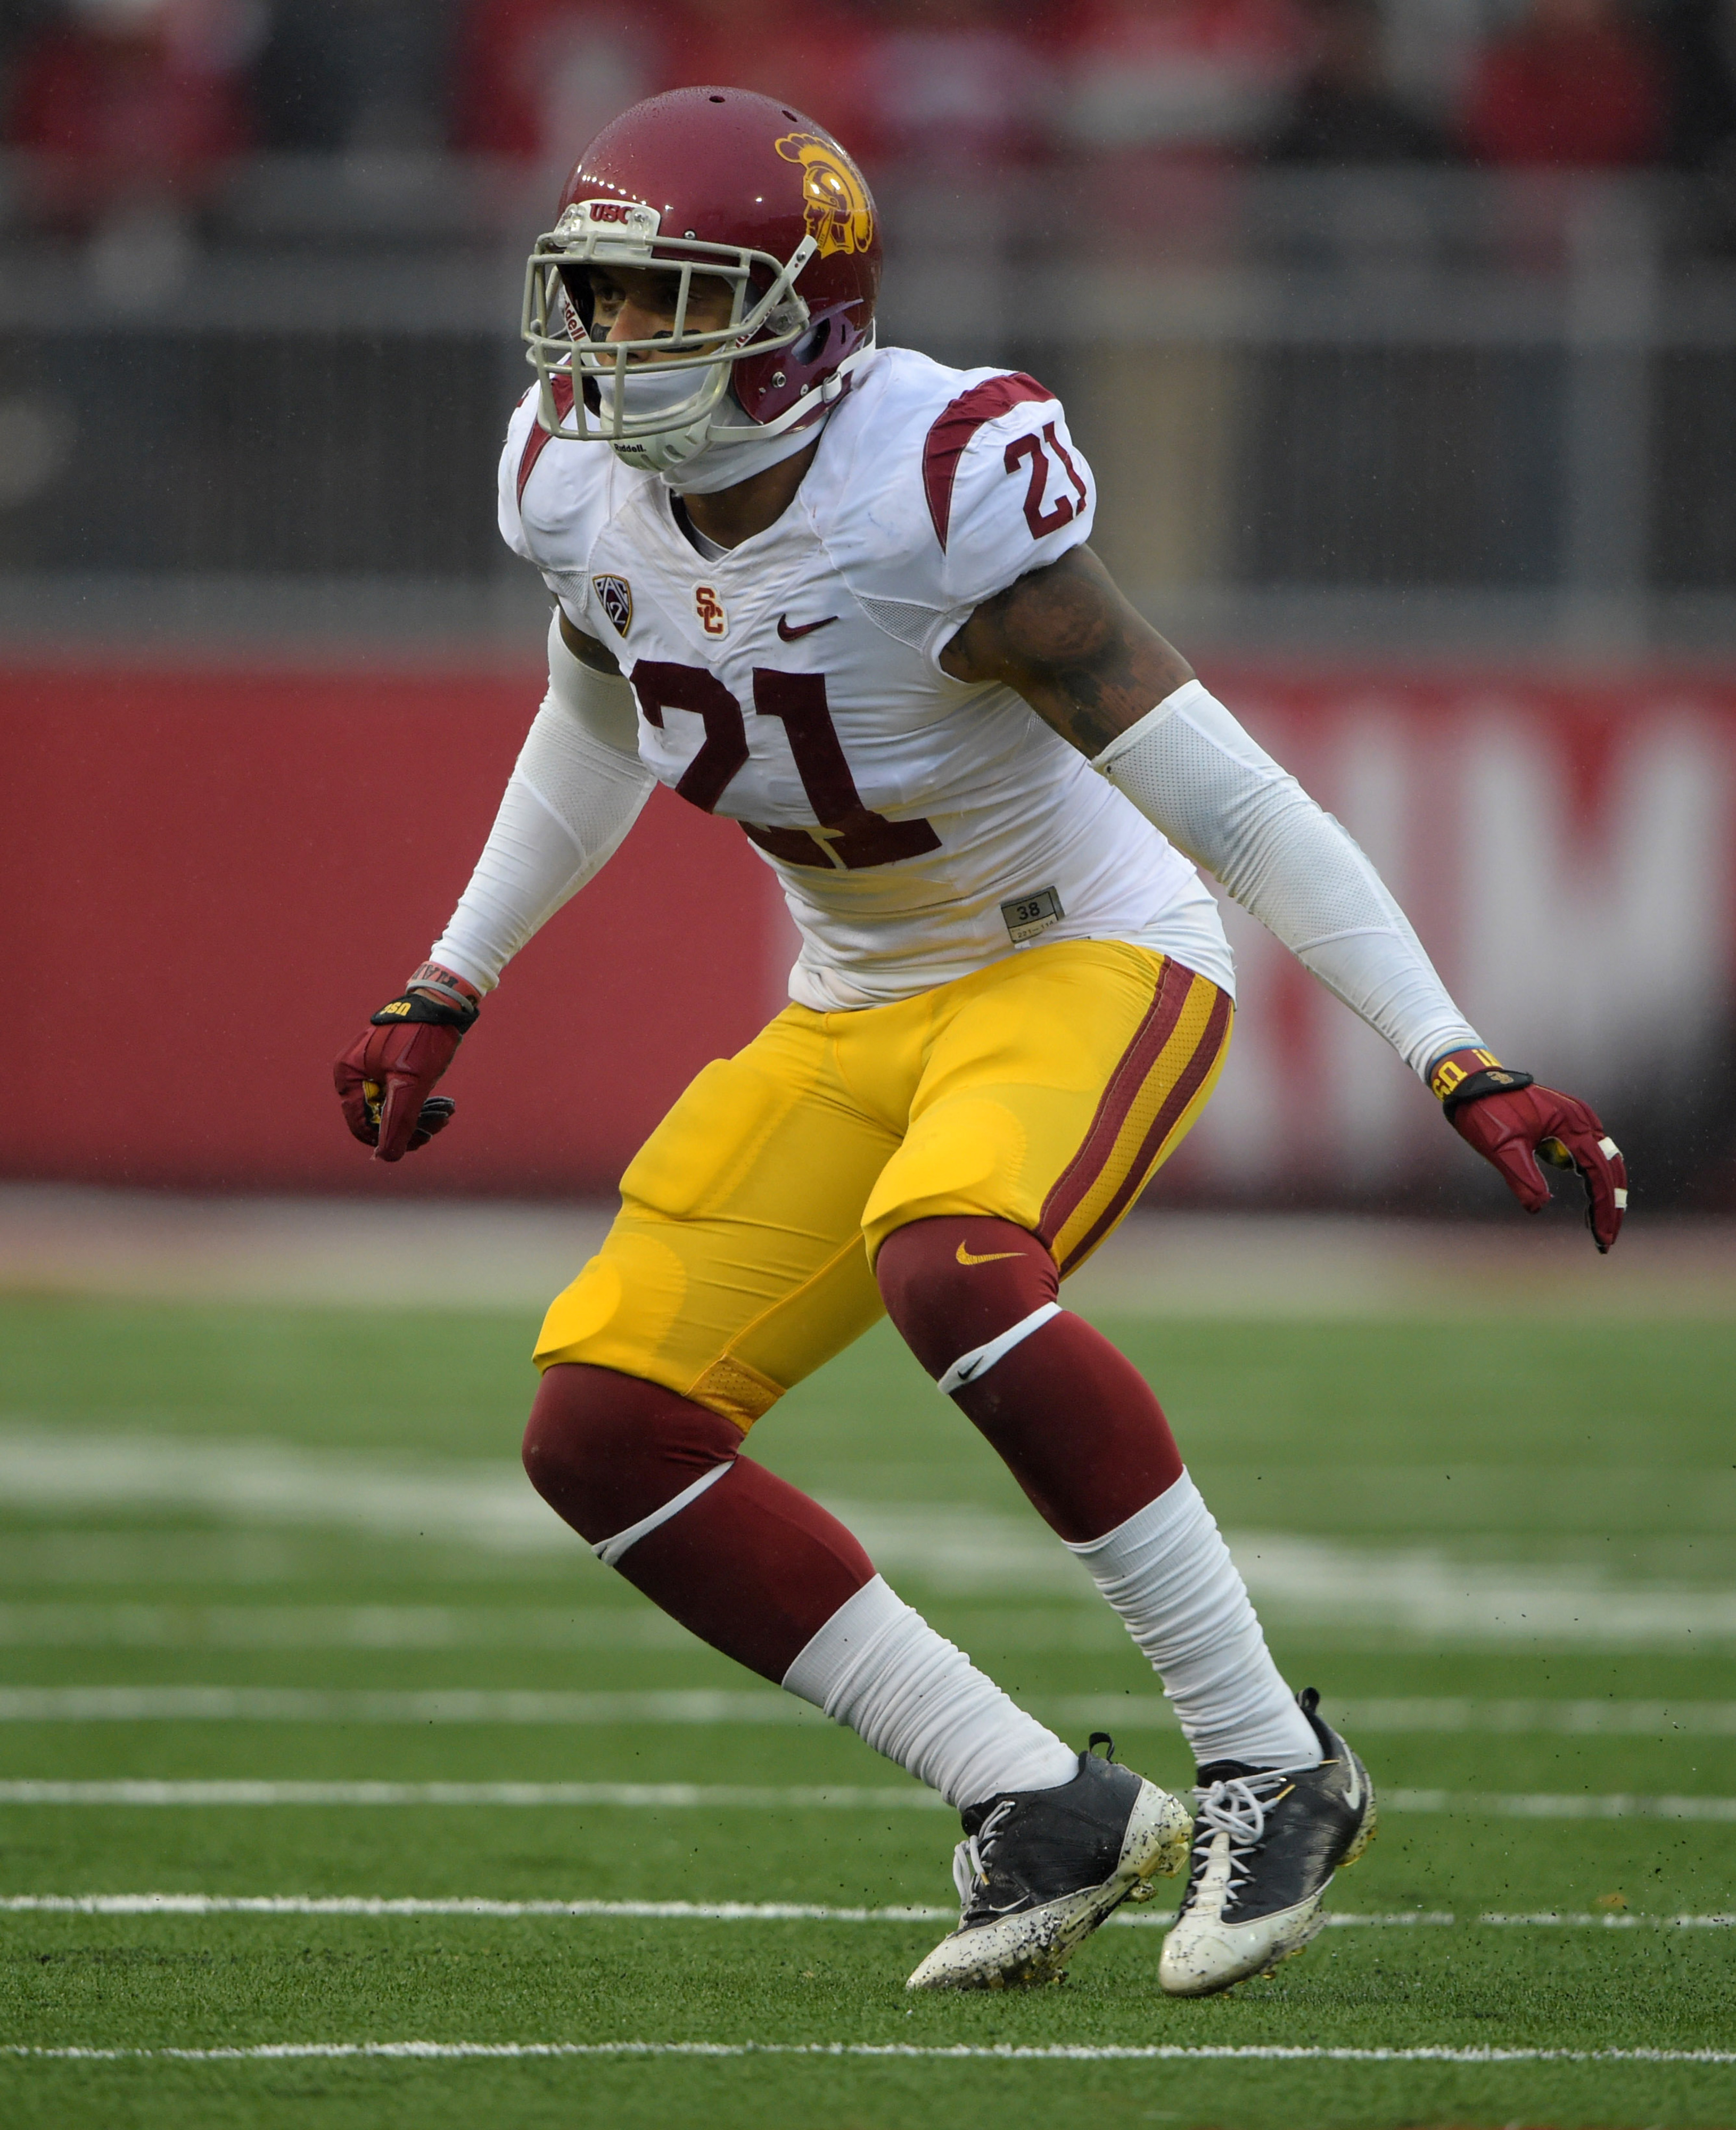 Only a right knee sprain, not worse, for Su'a Cravens